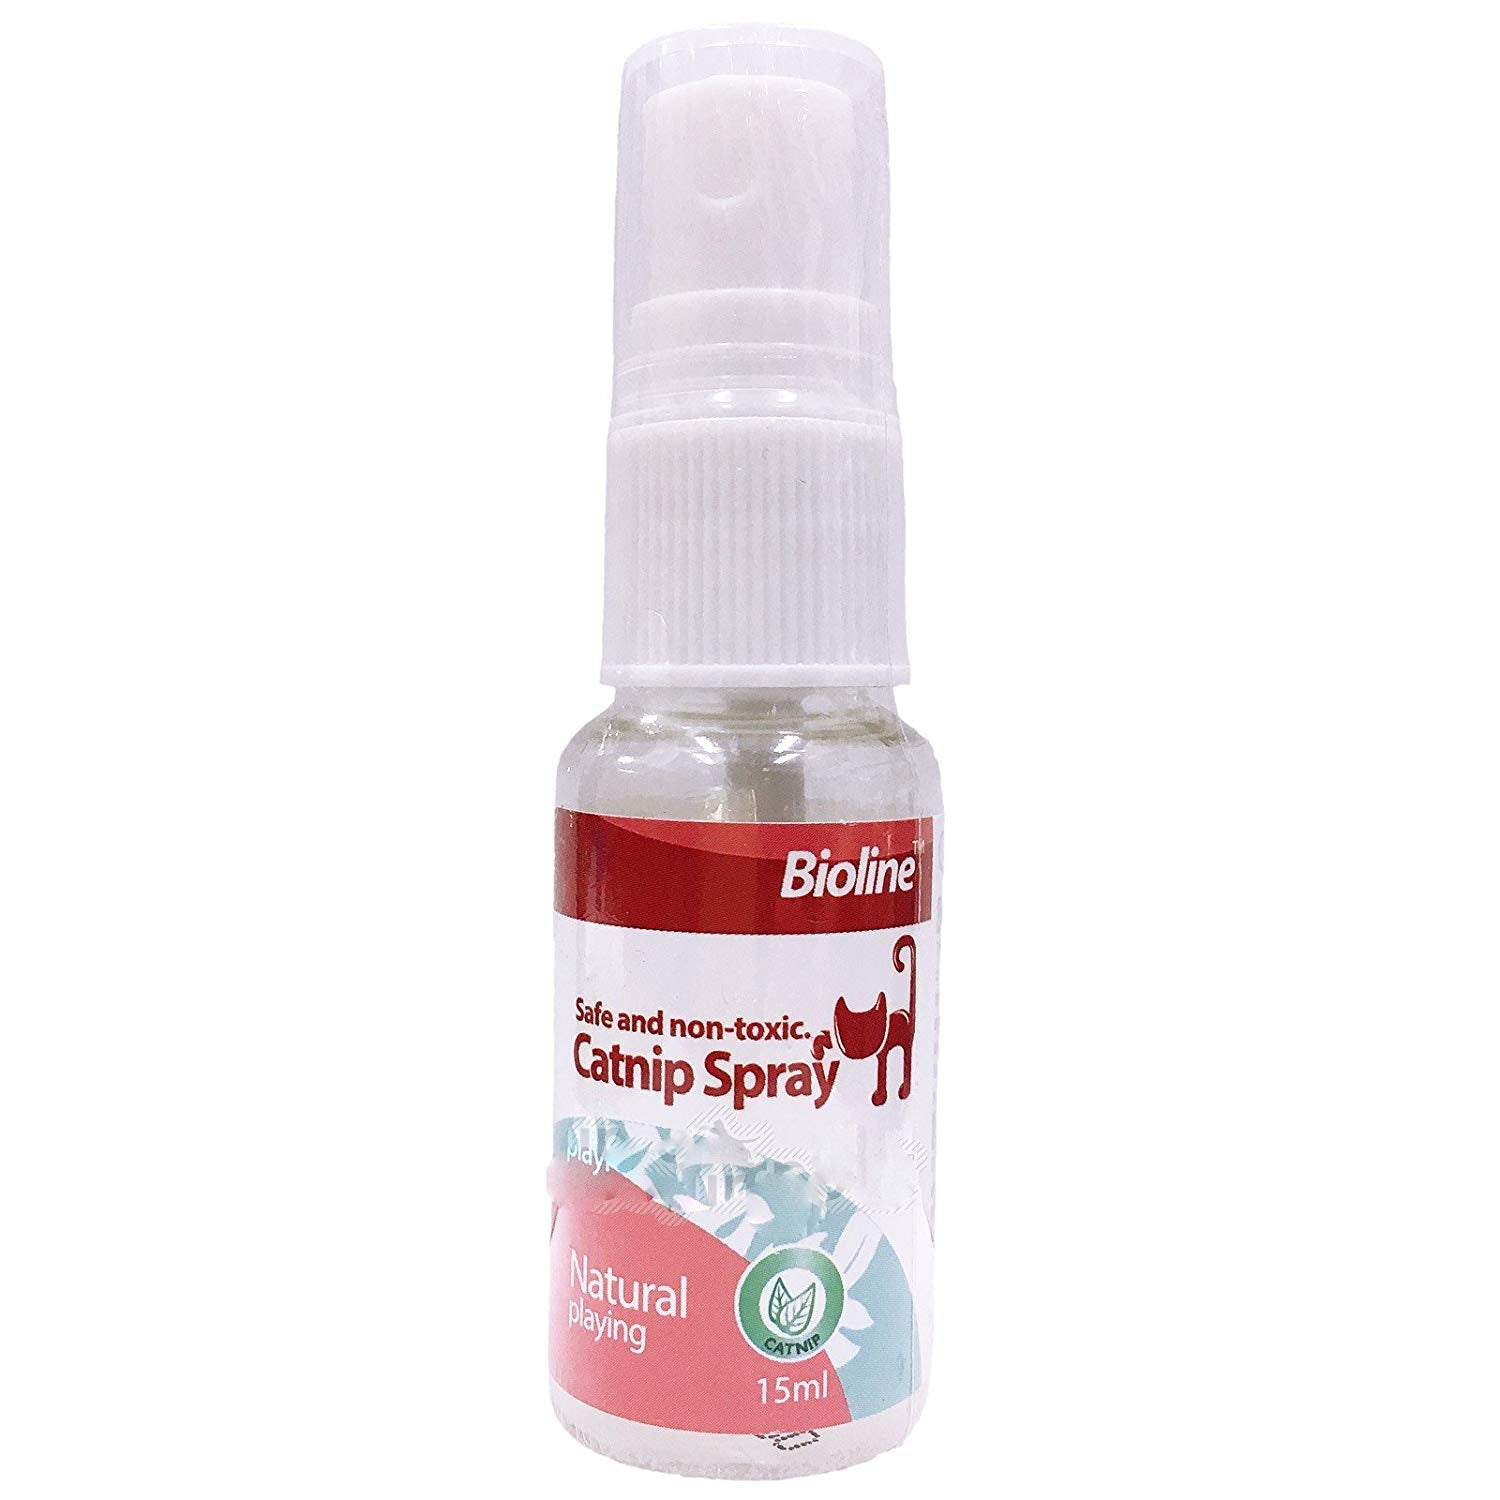 Bioline Catnip Spray for Cat Natural Play 15 ml - pet-club-india